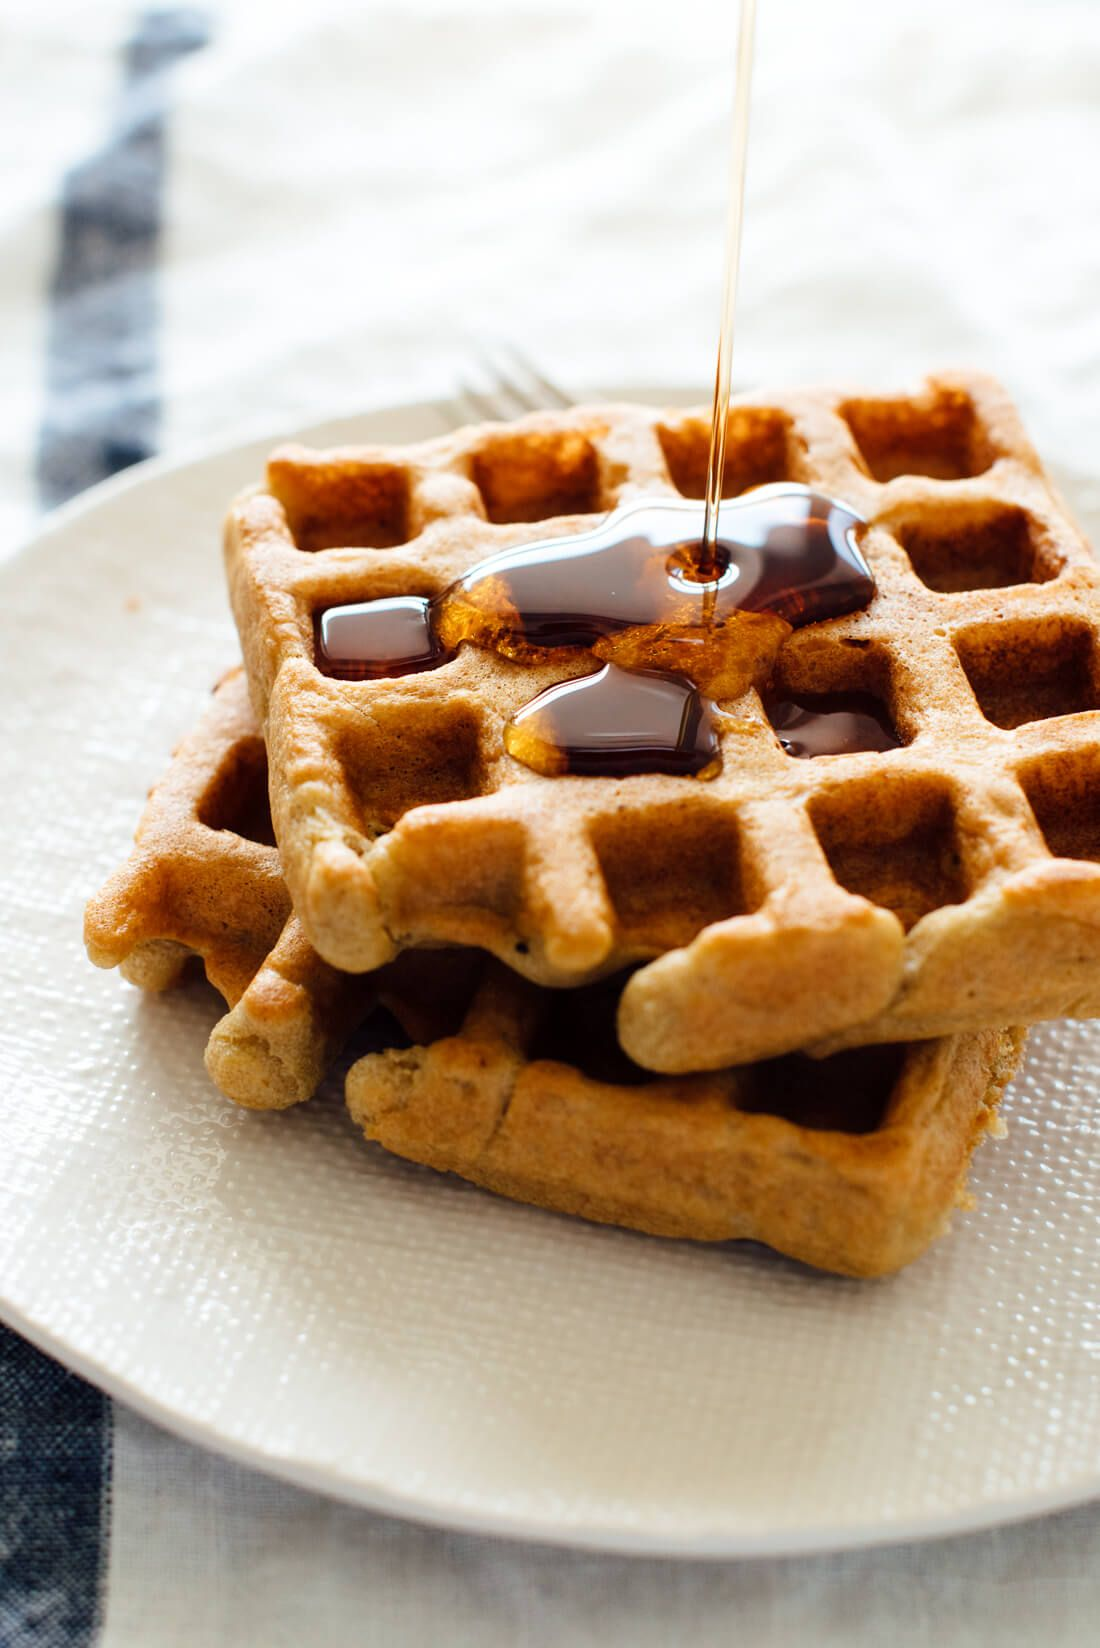 These gluten-free waffles are made with just one flour—oat flour! They\'re light, crispy on the outside, fluffy on the inside. Best waffles ever!